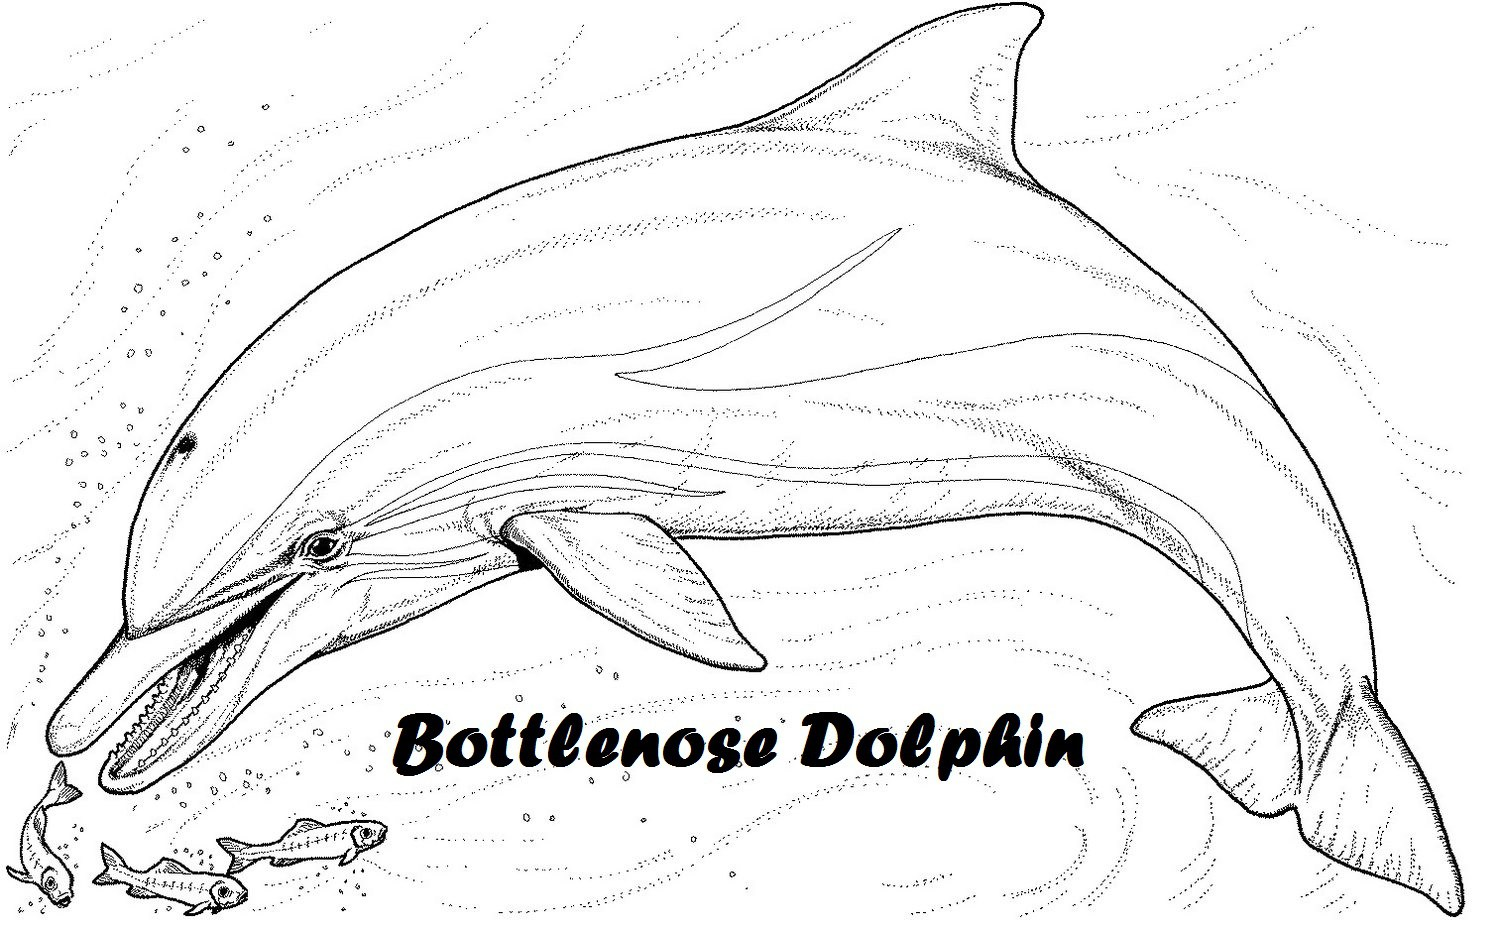 Bottlenose coloring Download Bottlenose coloring for free